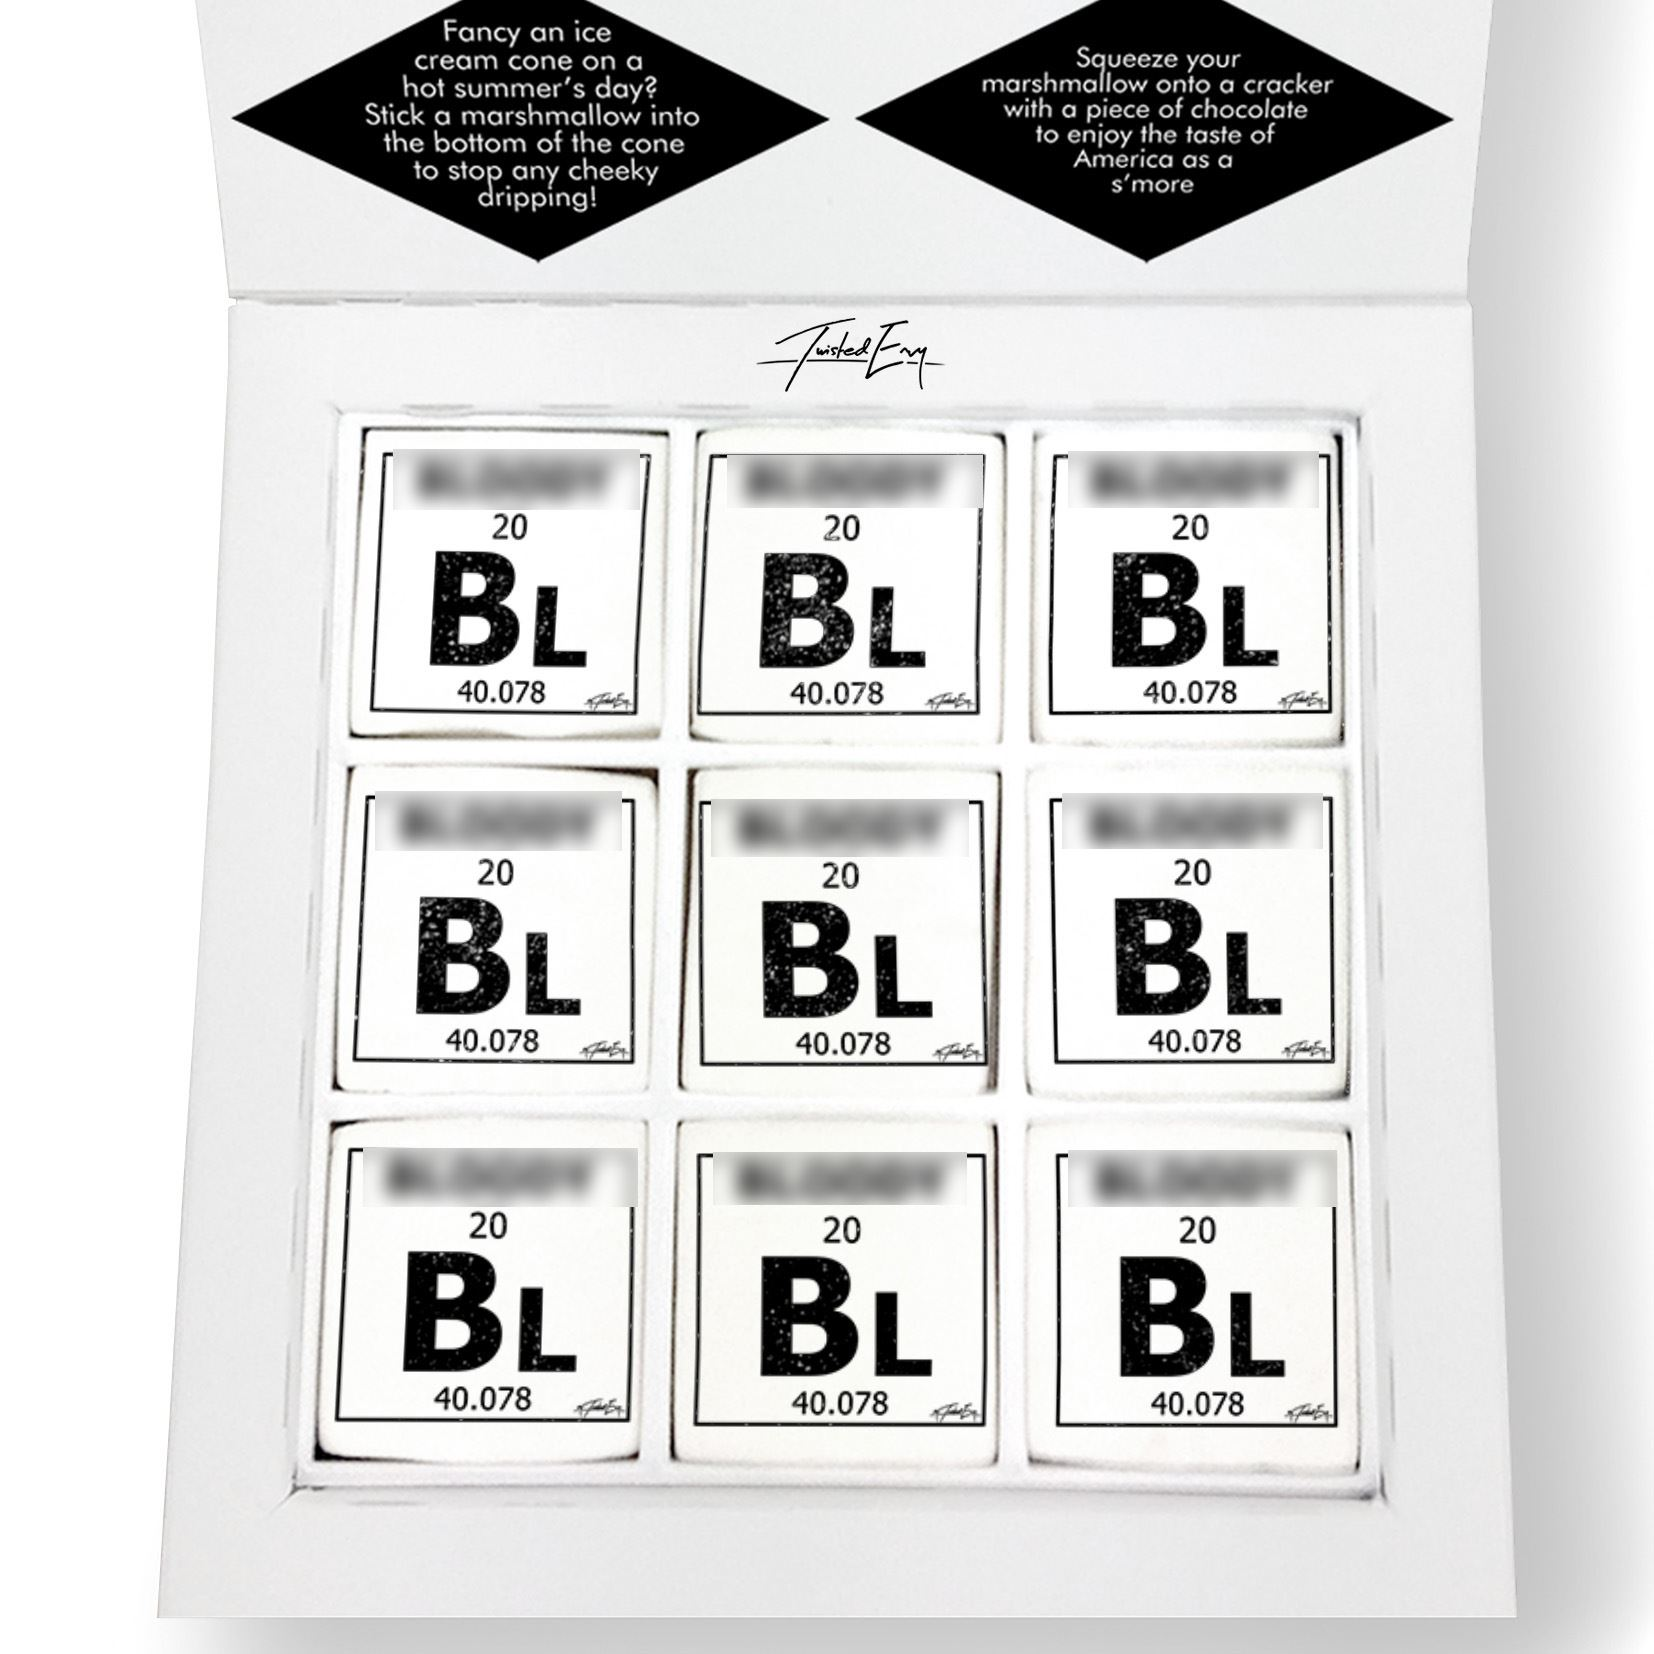 Twisted envy periodic table of swearing bl printed magical item specifics gamestrikefo Image collections